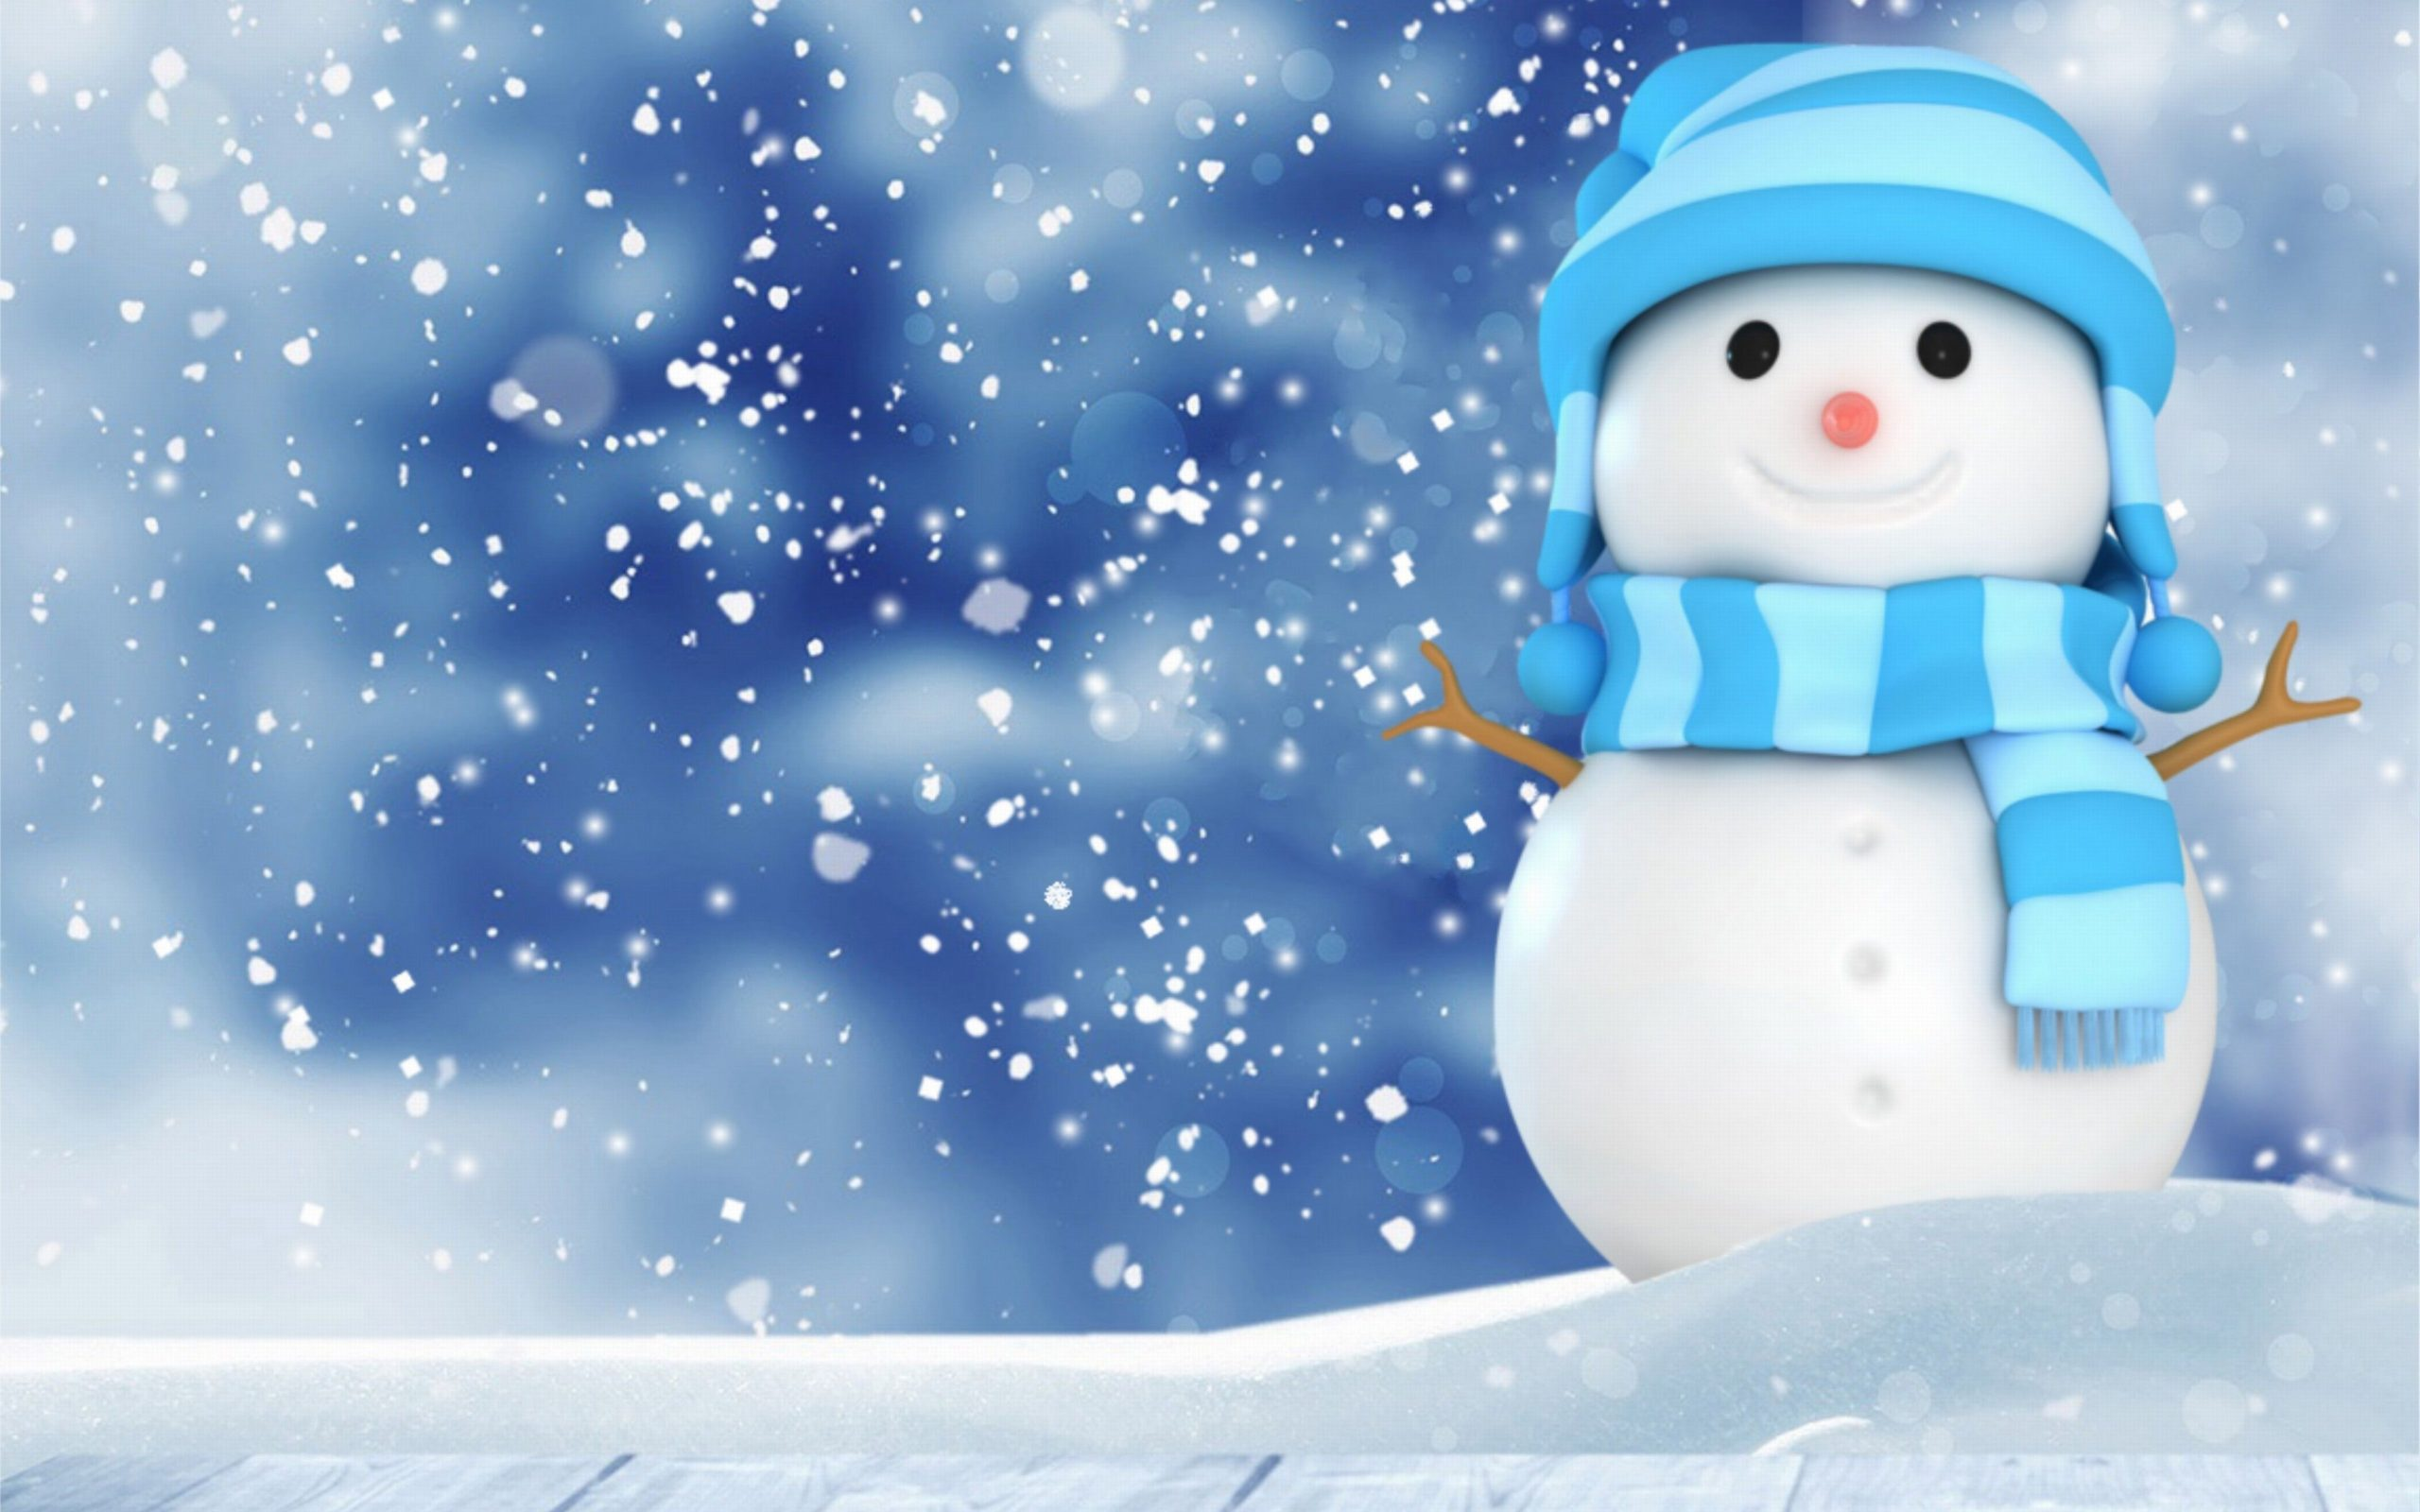 snowman wallpaper hd